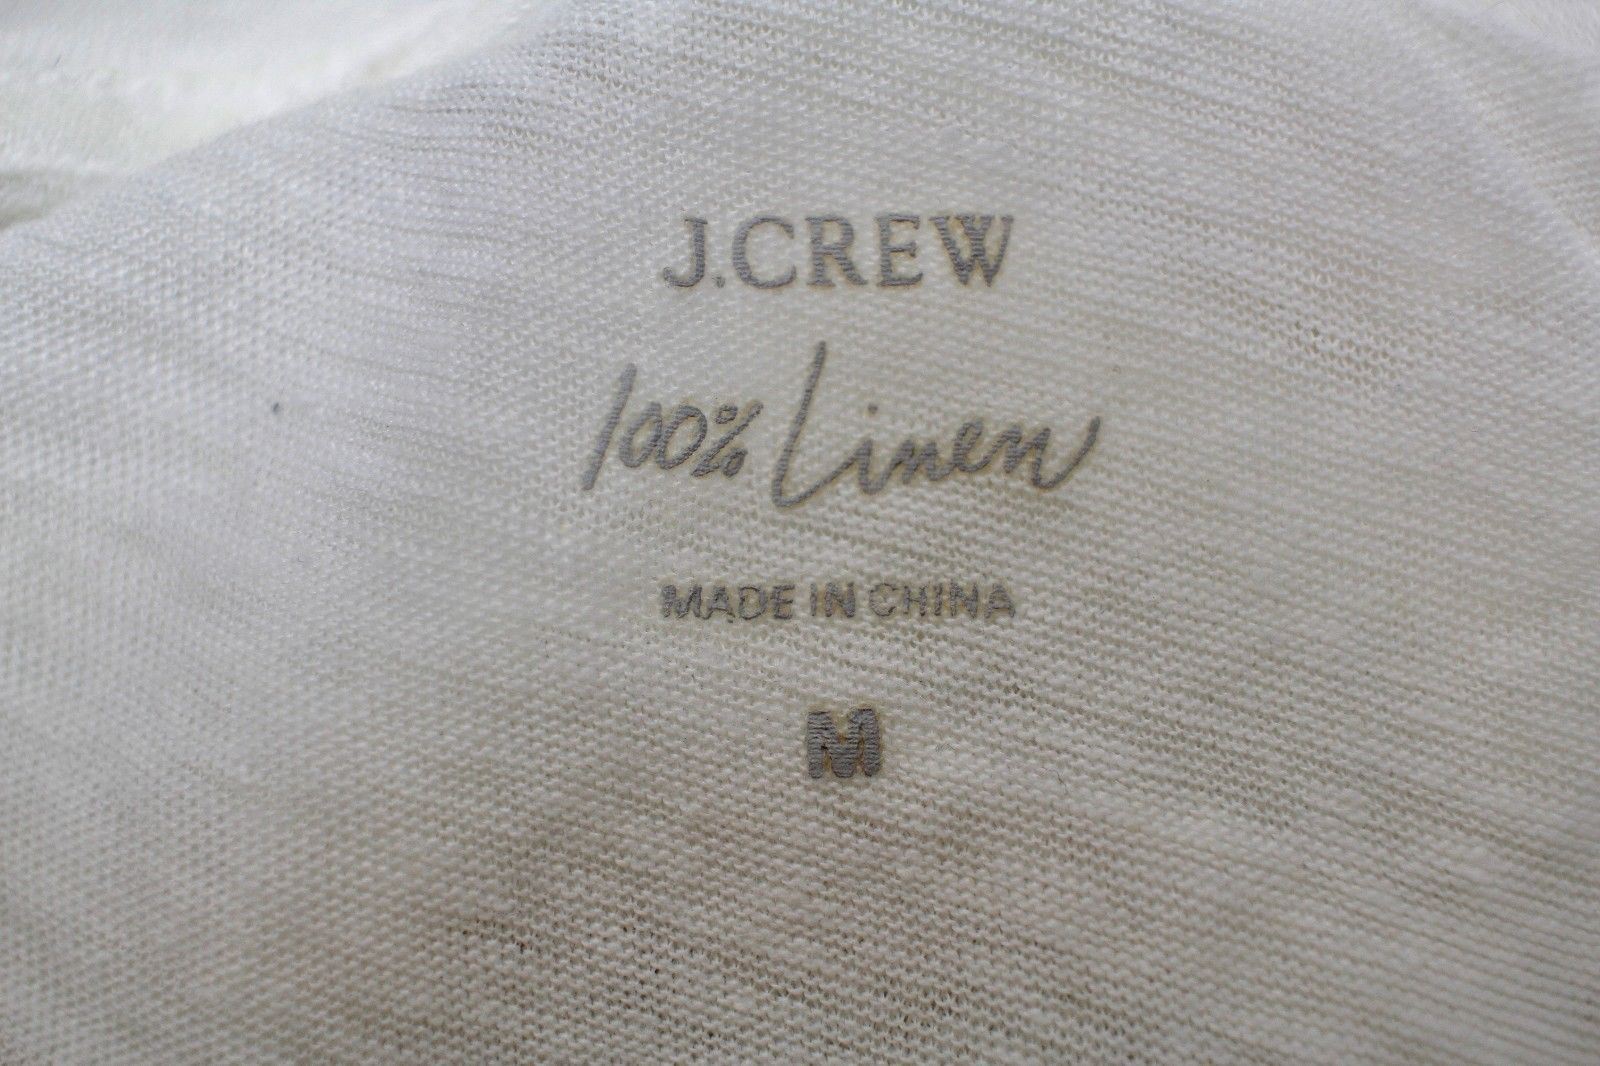 J Crew Boyfriend T-Shirt 100% Linen Tee Women's M White Short Sleeve Top Dolman image 5